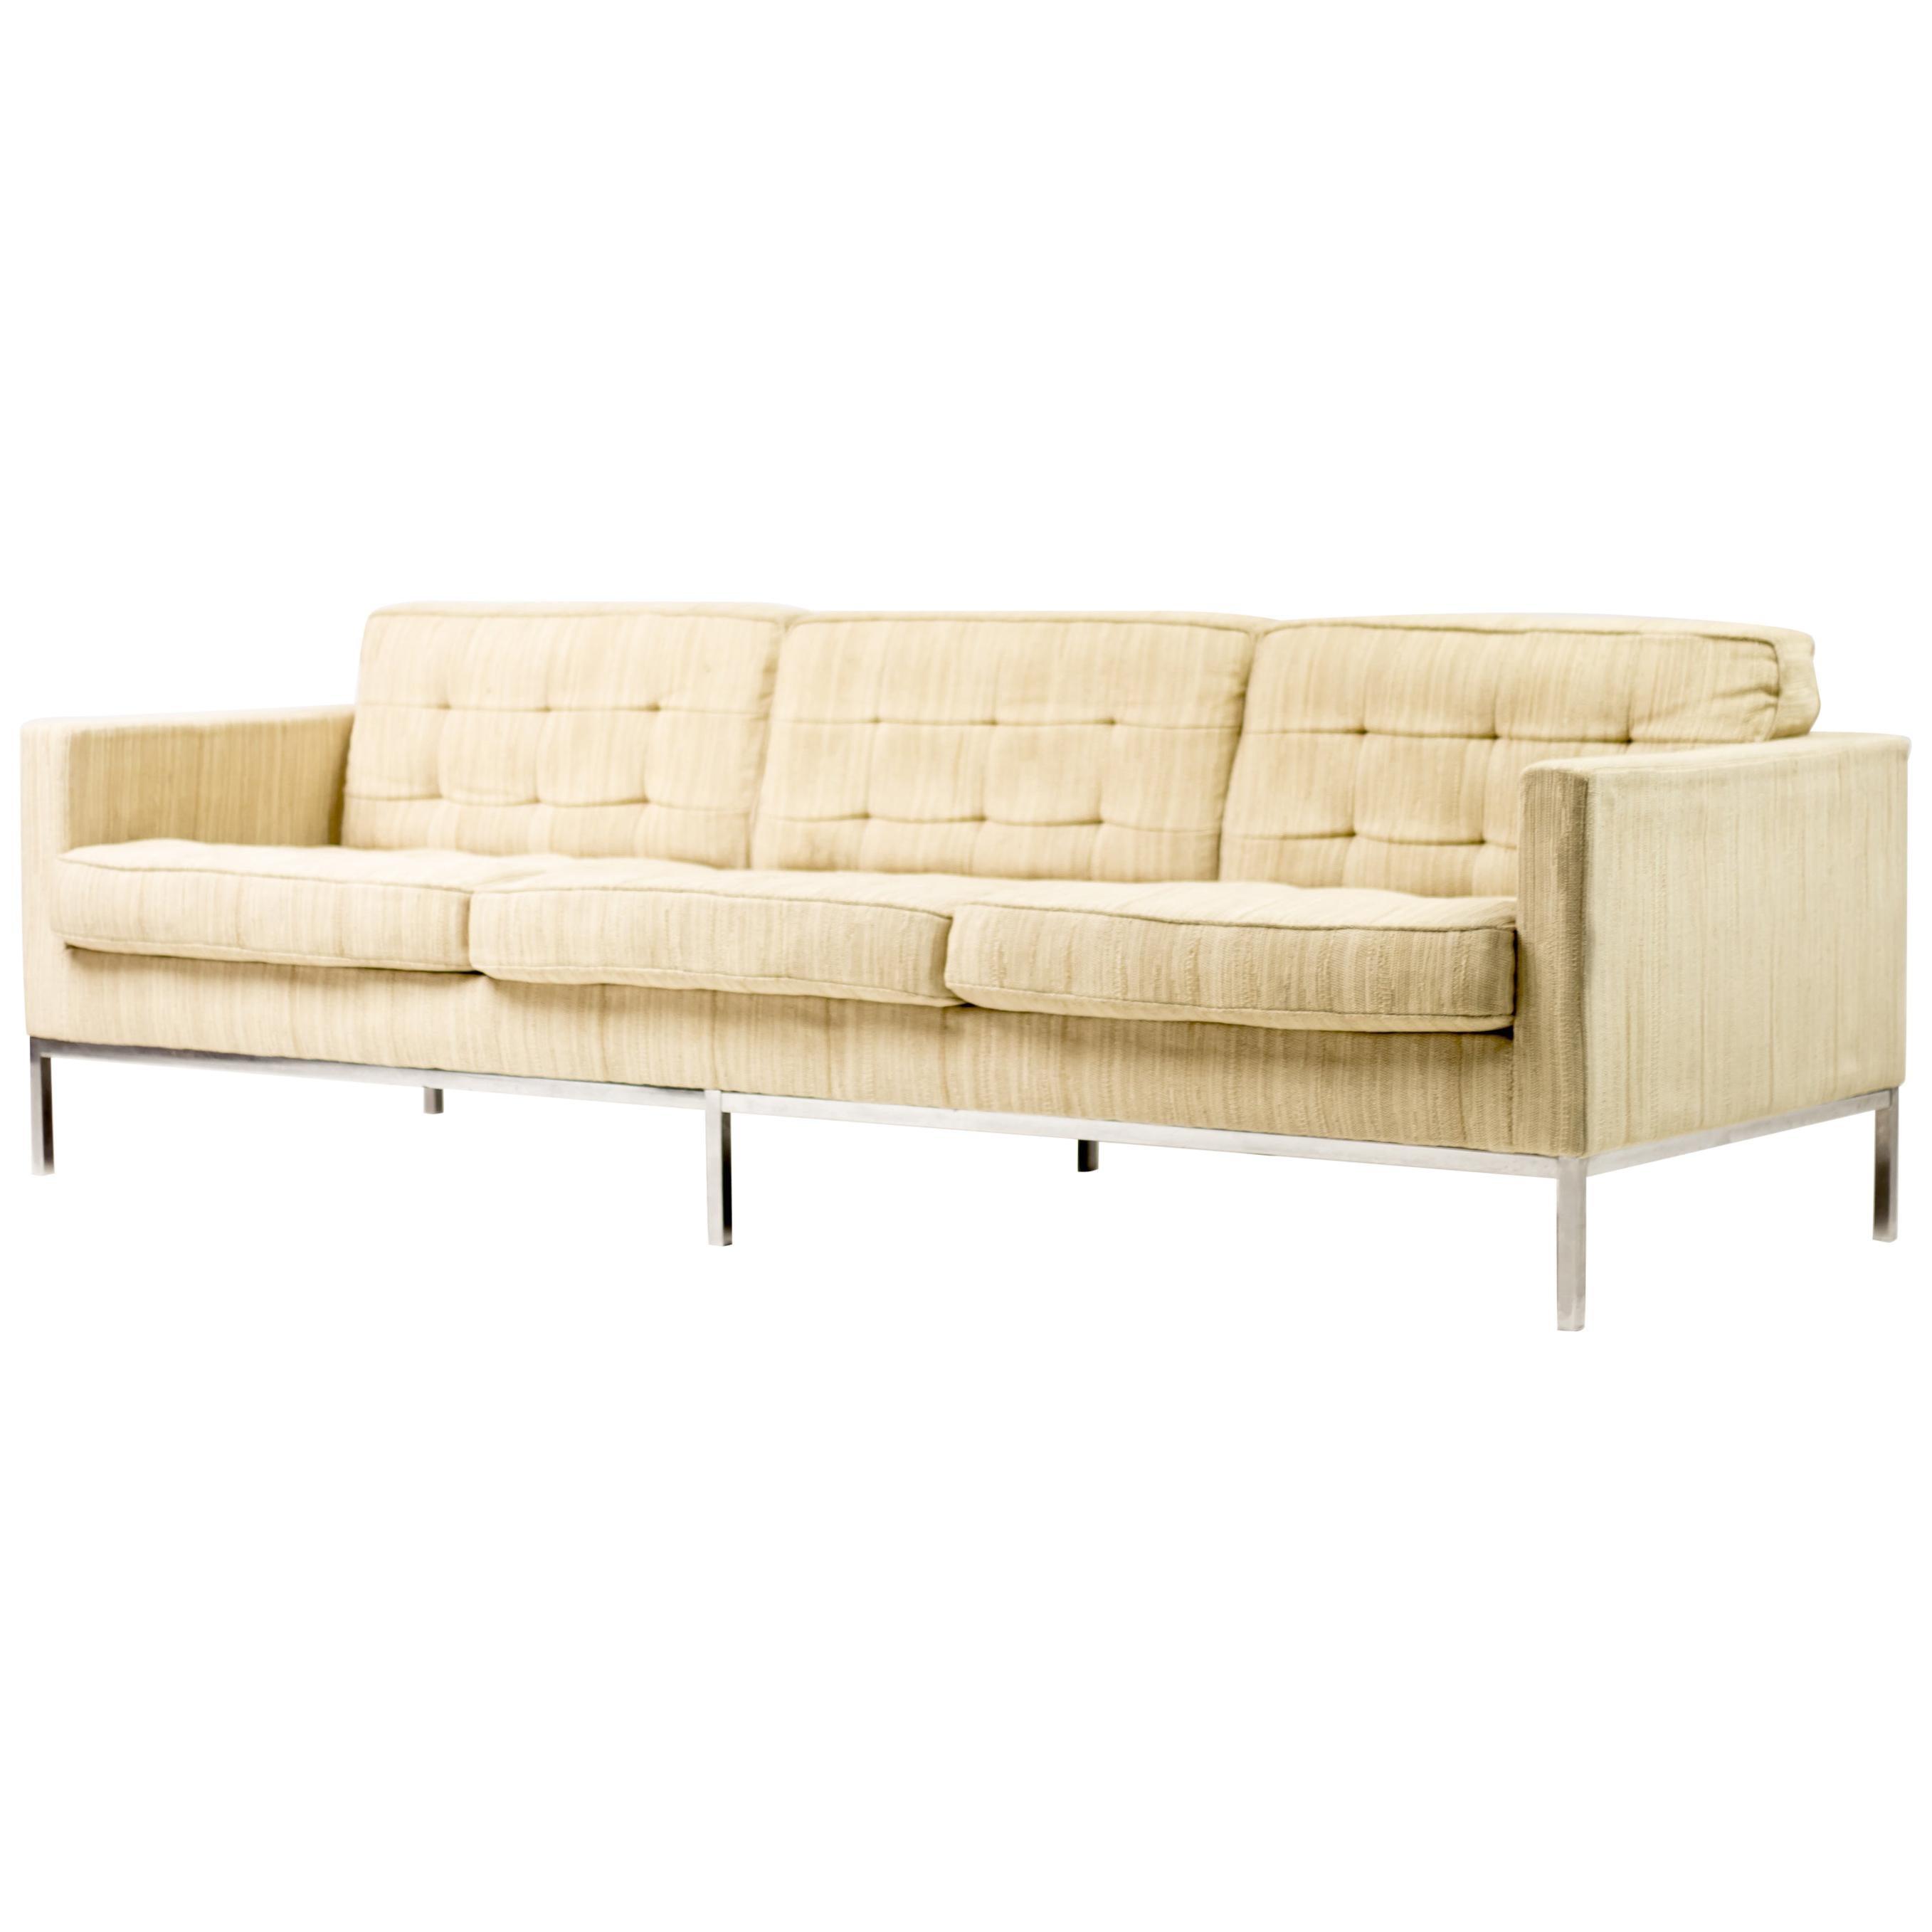 Corduroy 3 Seater Sofa Mid Century Modern Sofas 3 260 For Sale At 1stdibs